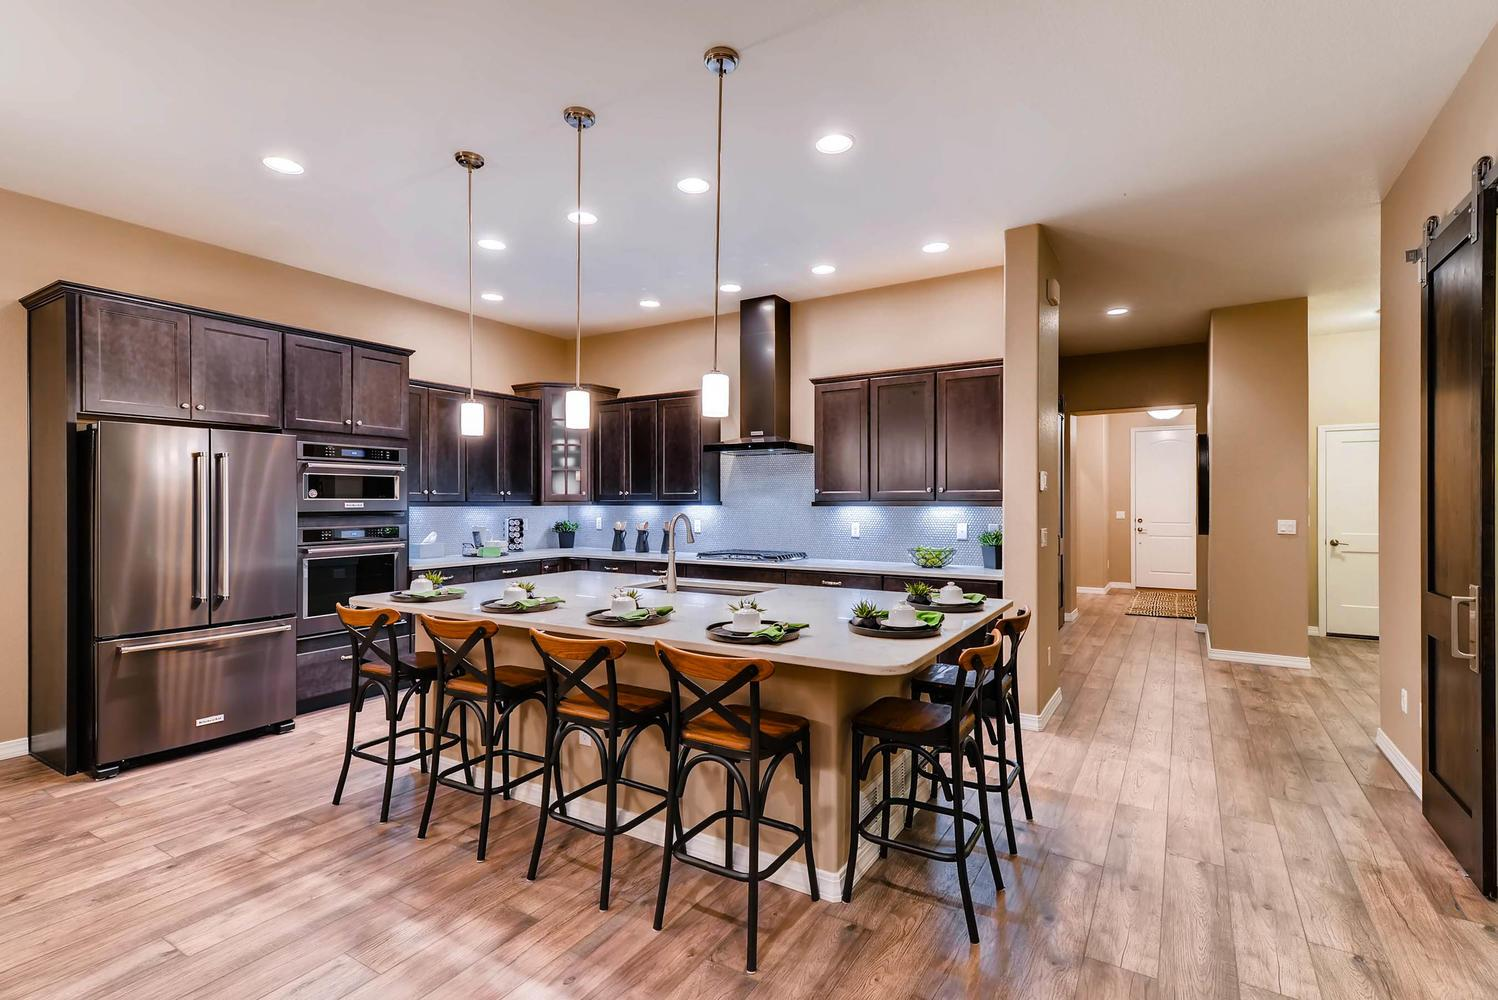 Kitchen featured in the Daybreak By Classic Homes in Colorado Springs, CO